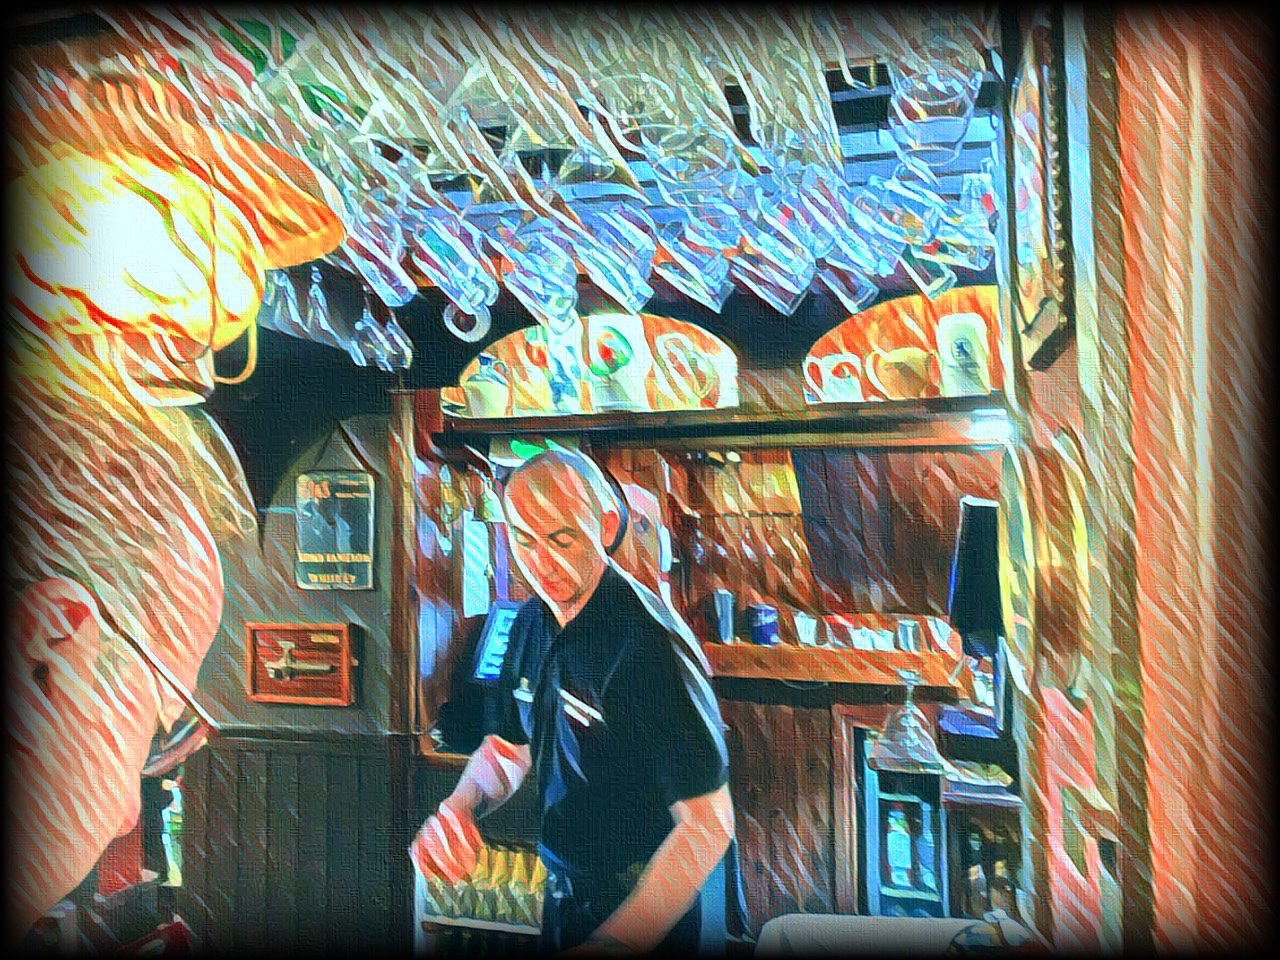 June 30, 2019 - Pub in Killarney, County Kerry, Ireland [Prisma & iColorama]